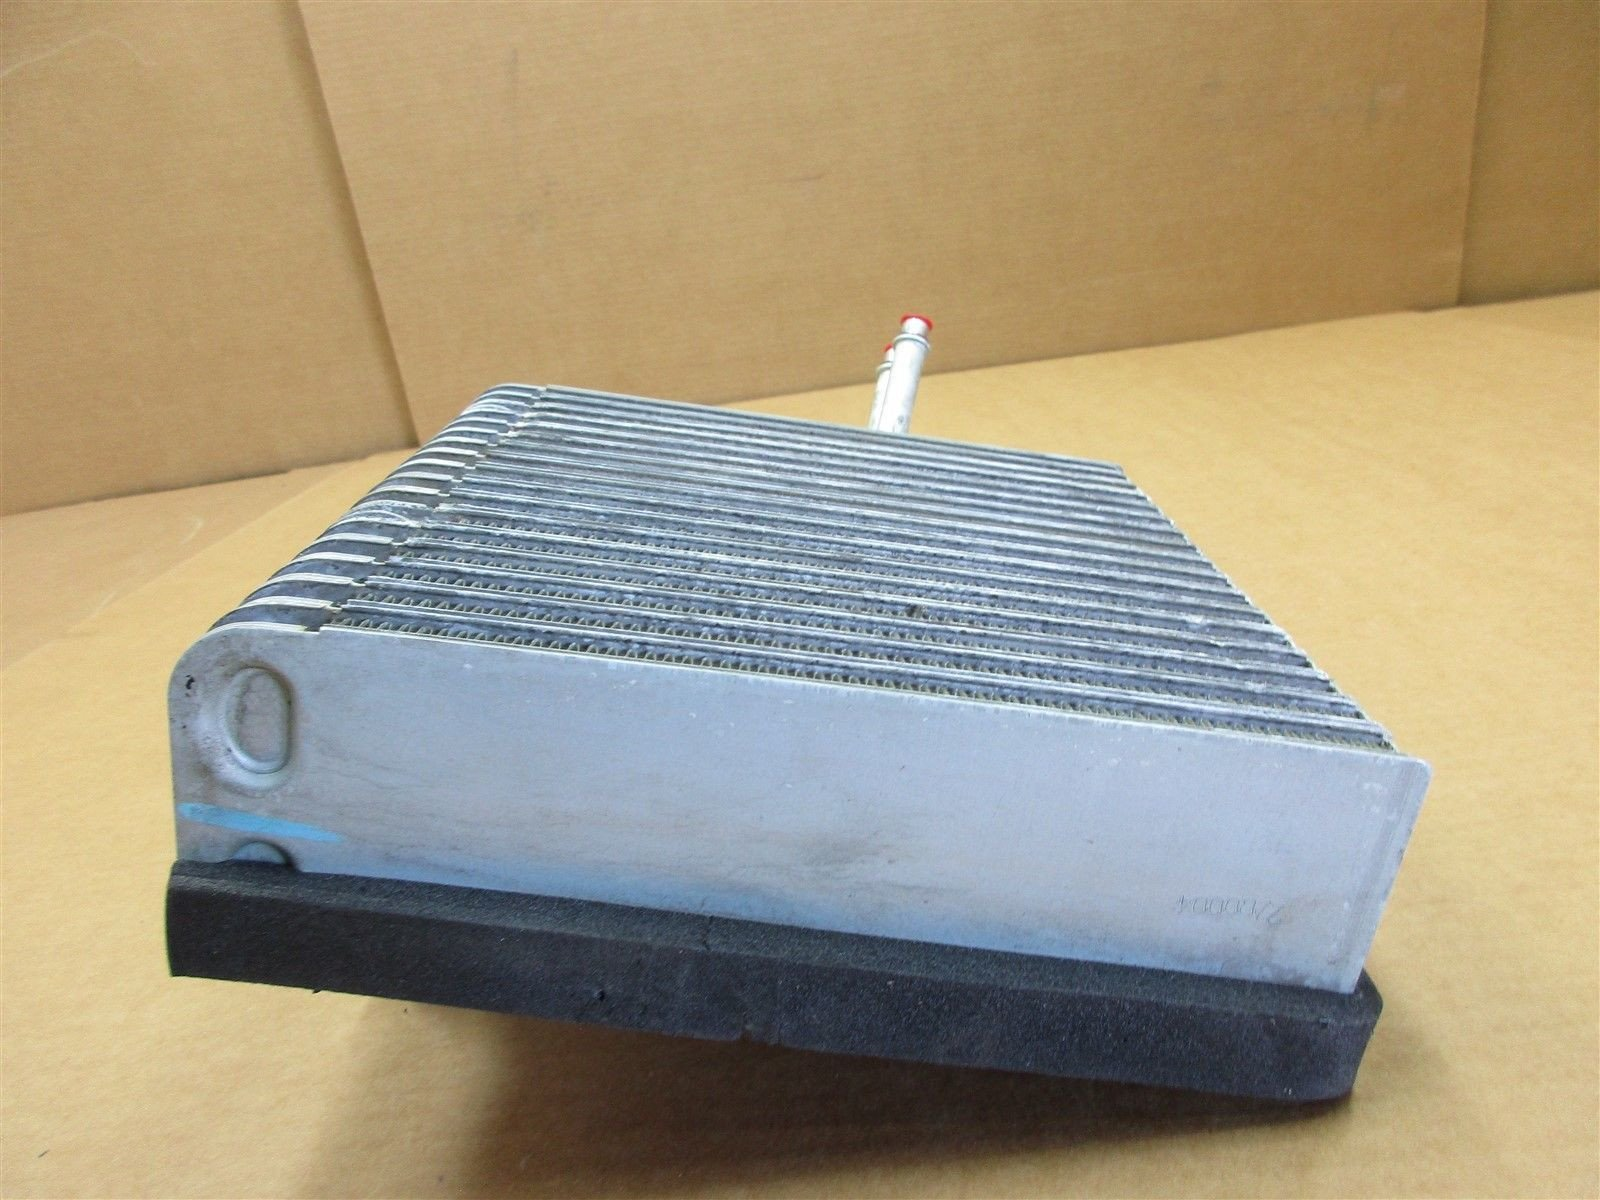 01 Boxster RWD Porsche 986 A/C BOX EVAPORATOR Air Conditioner 26,025